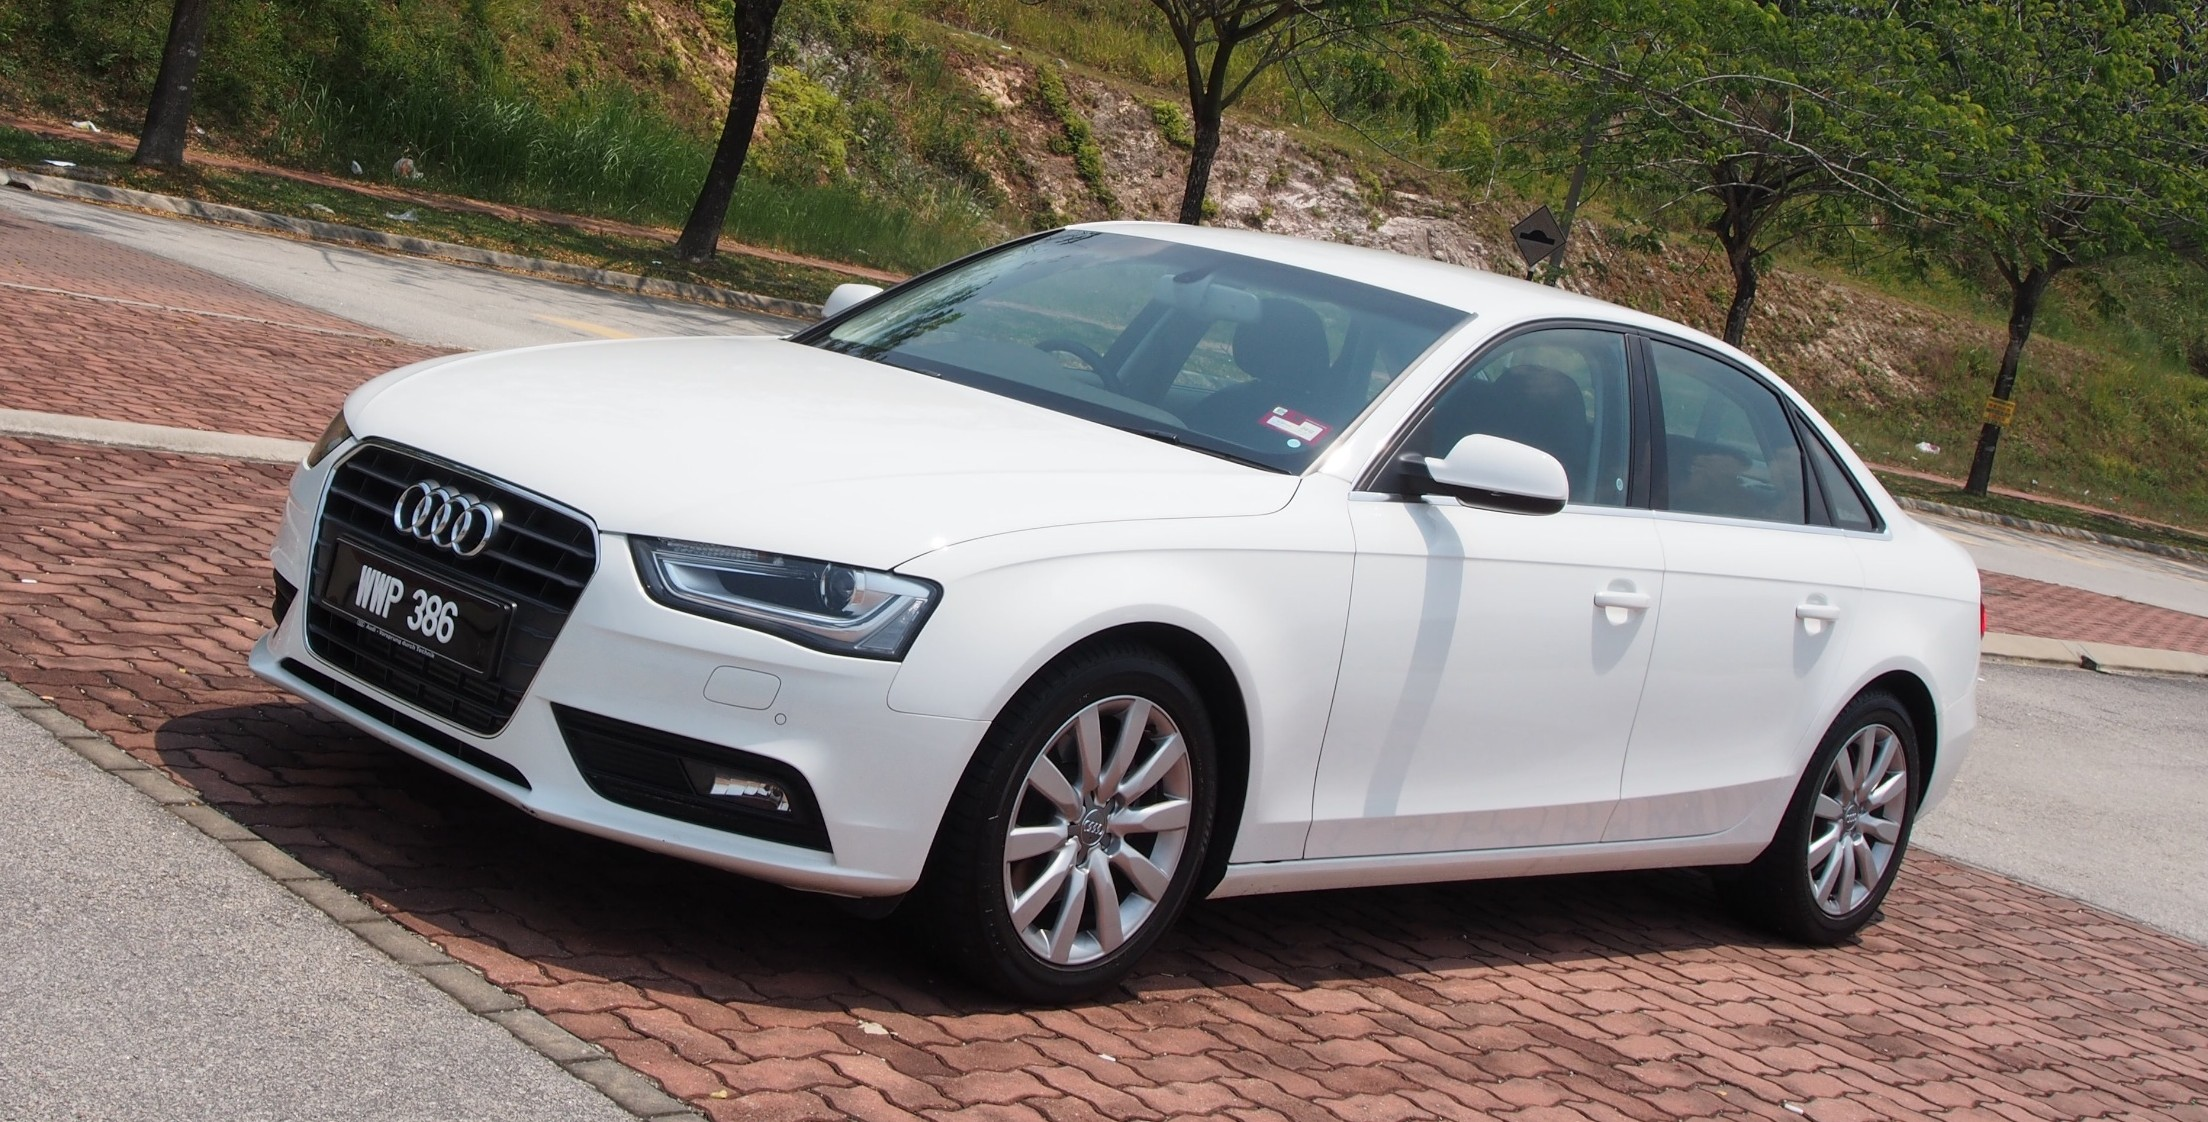 Audi A4 1 8 Tfsi Specs Upgraded With B Amp O Sound